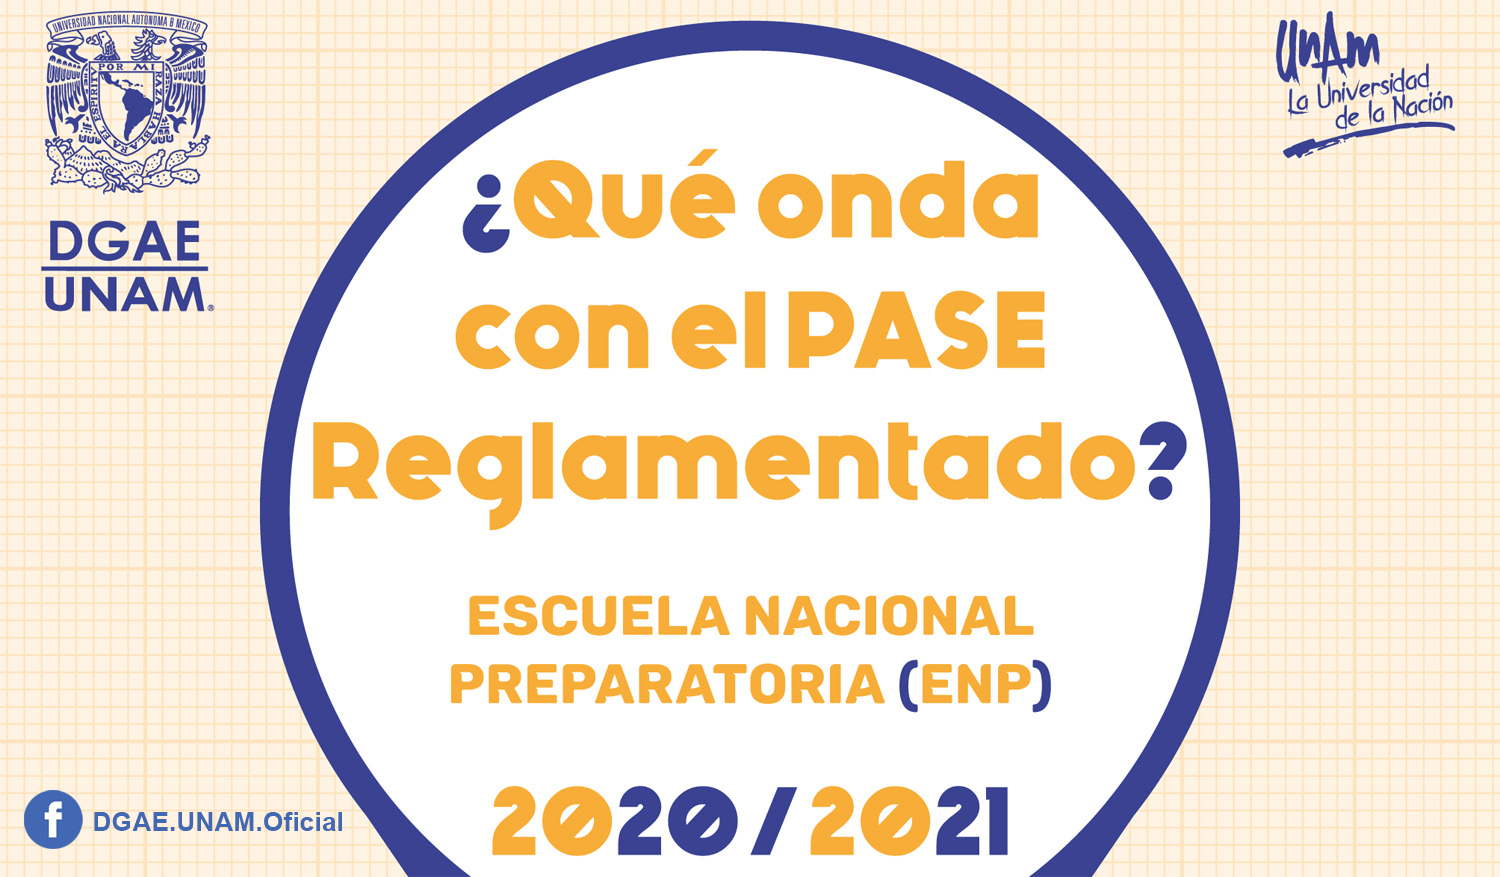 Folleto Pase Reglamentado 2021